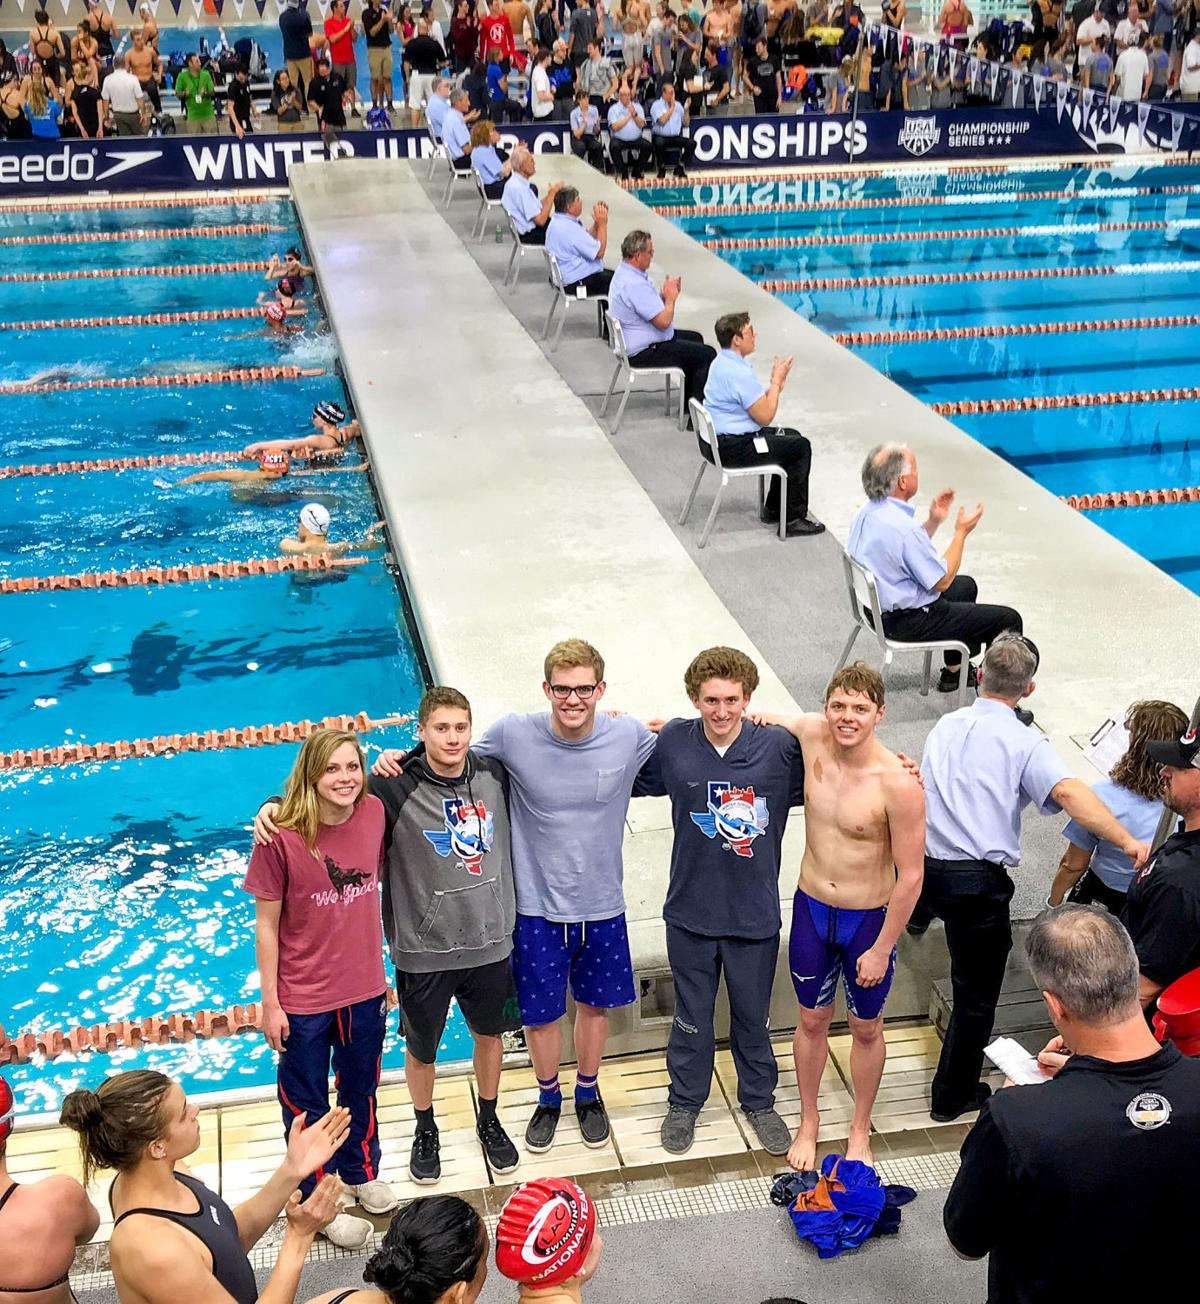 Helena Lions Swimmer Parker Keller Has Eyes Set On College And Olympic Dreams High School Swimming 406mtsports Com